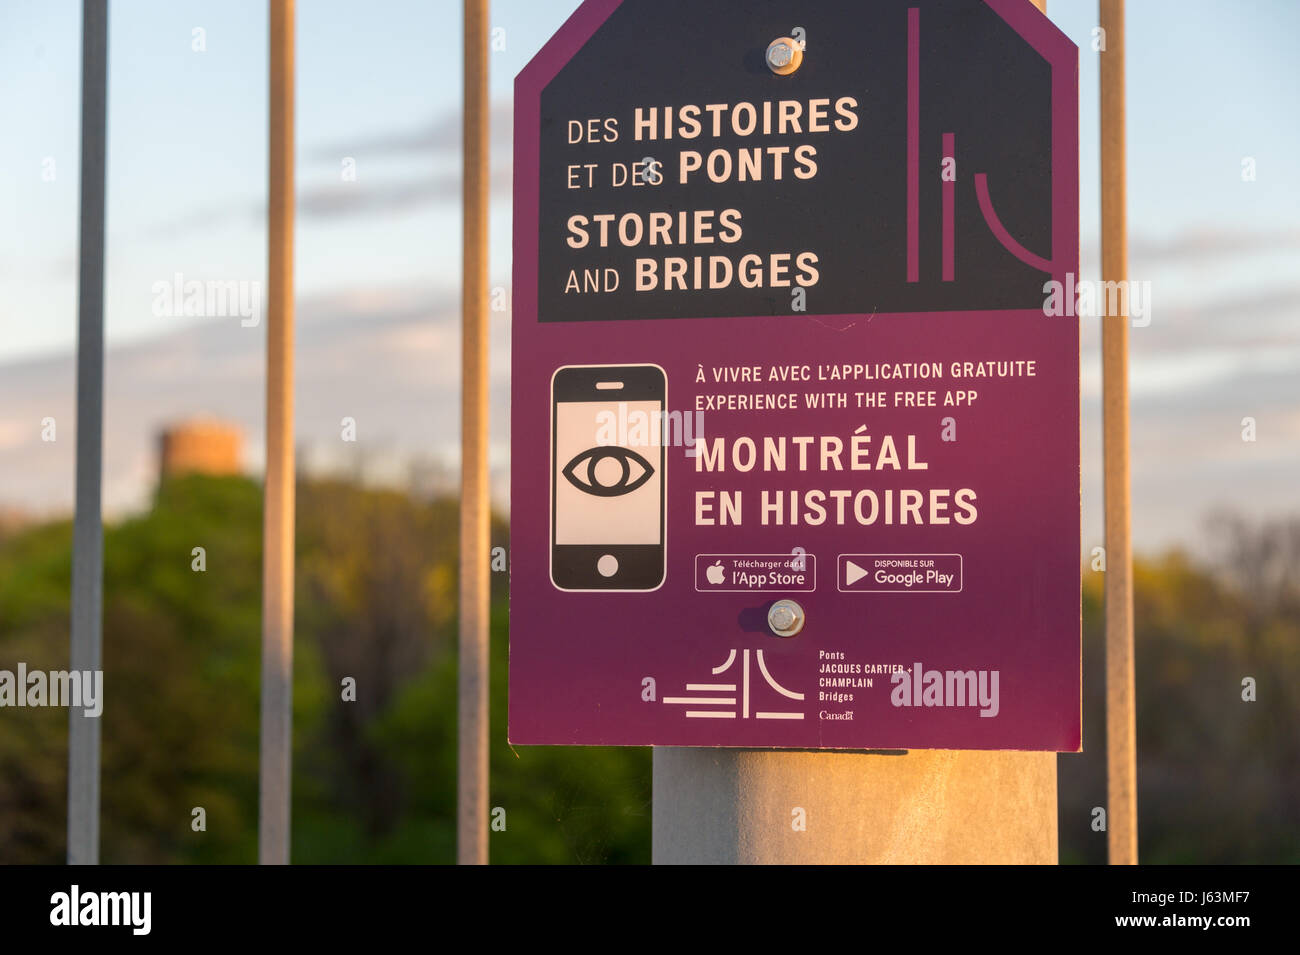 'Montreal en Histoires' point of interest on Jacques Cartier Bridge. 'Montreal en Histoires' is - Stock Image